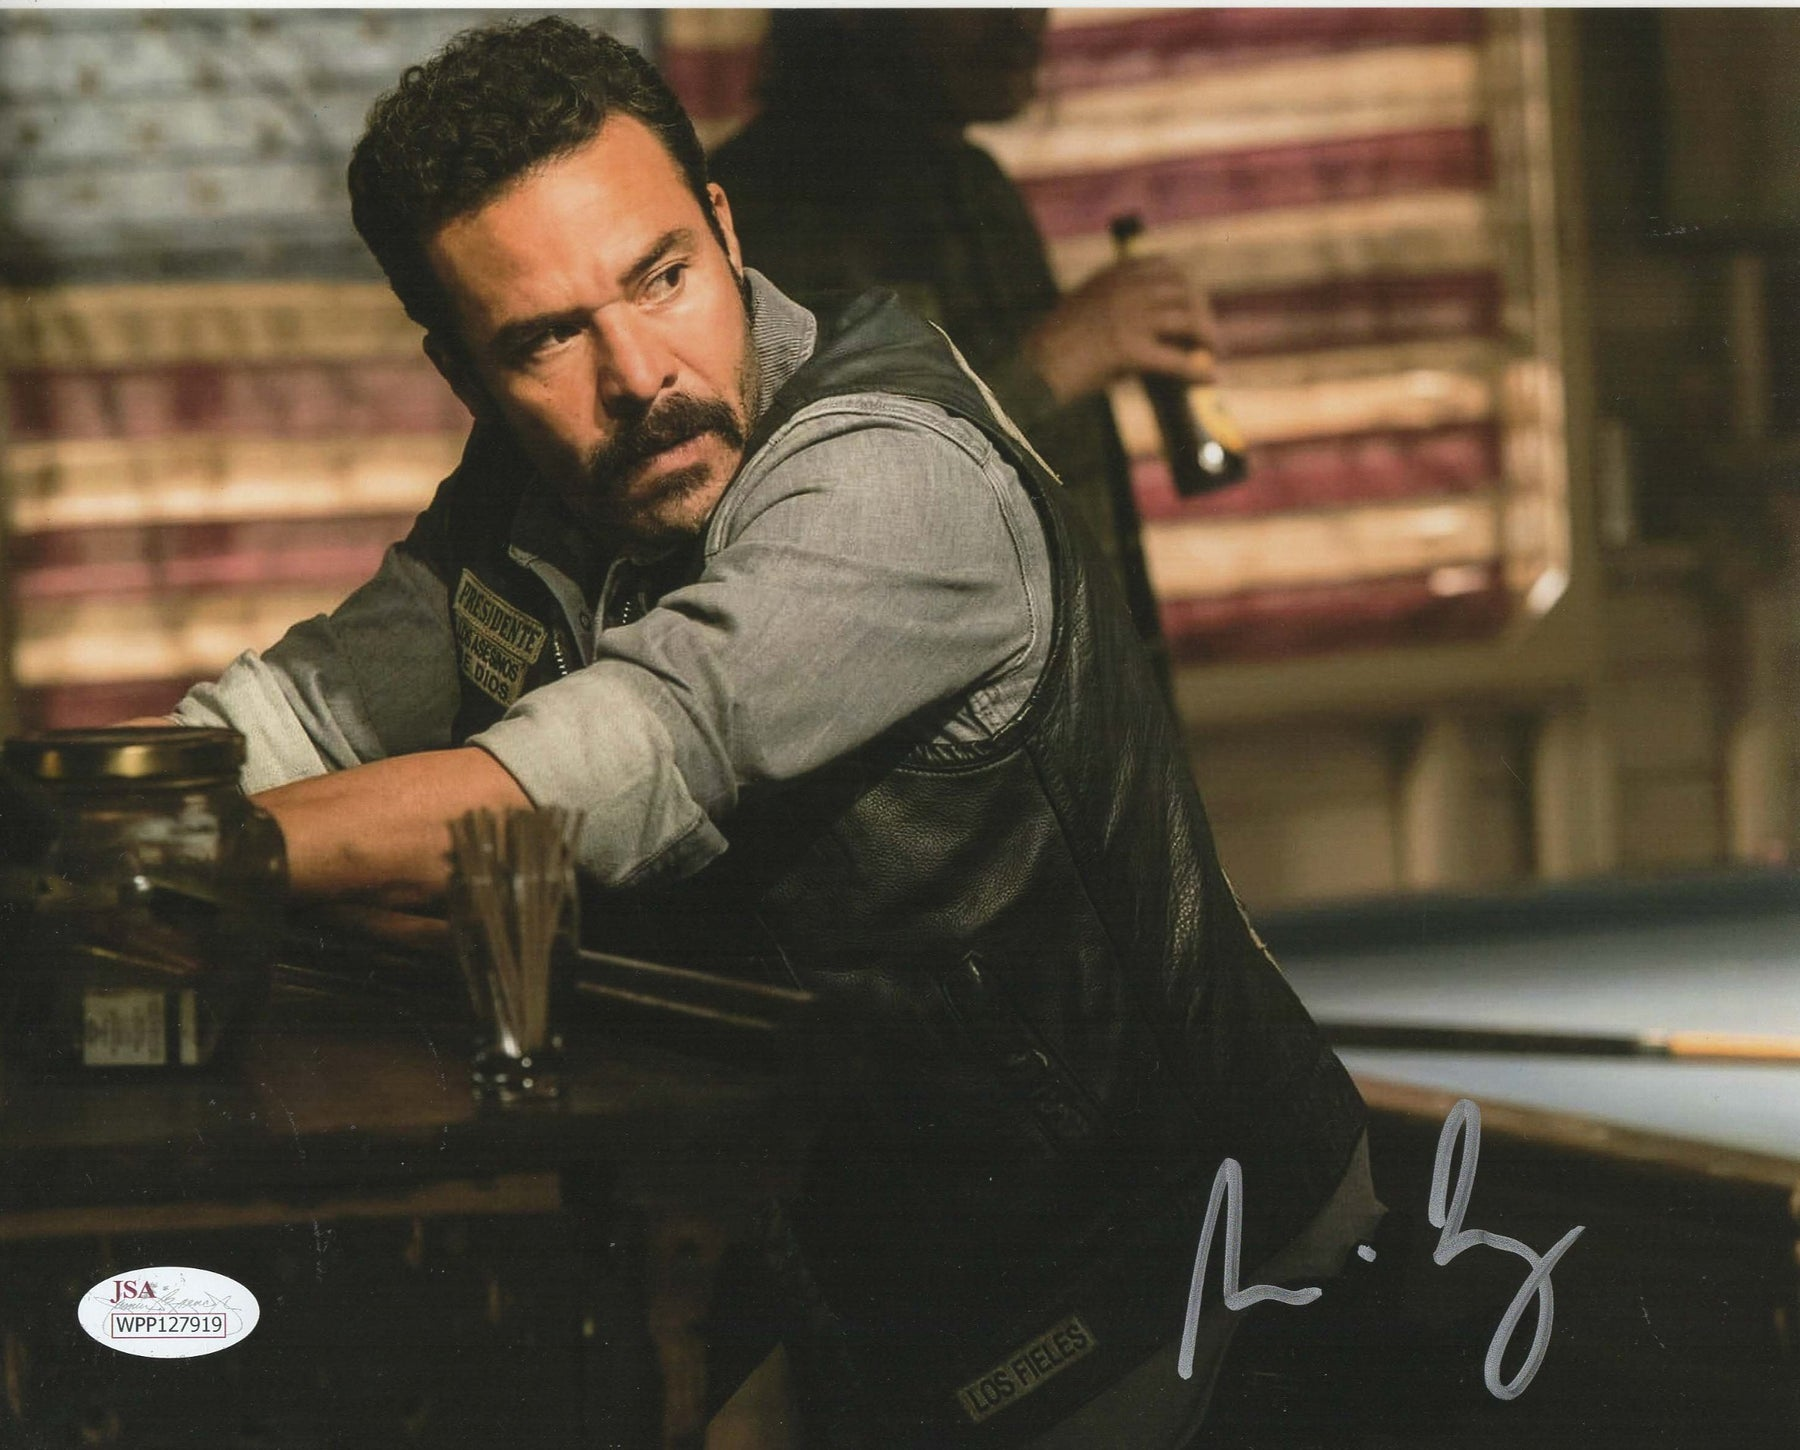 Michael Irby Autograph 8x10 Photo Bishop Mayans MC Signed JSA COA M3